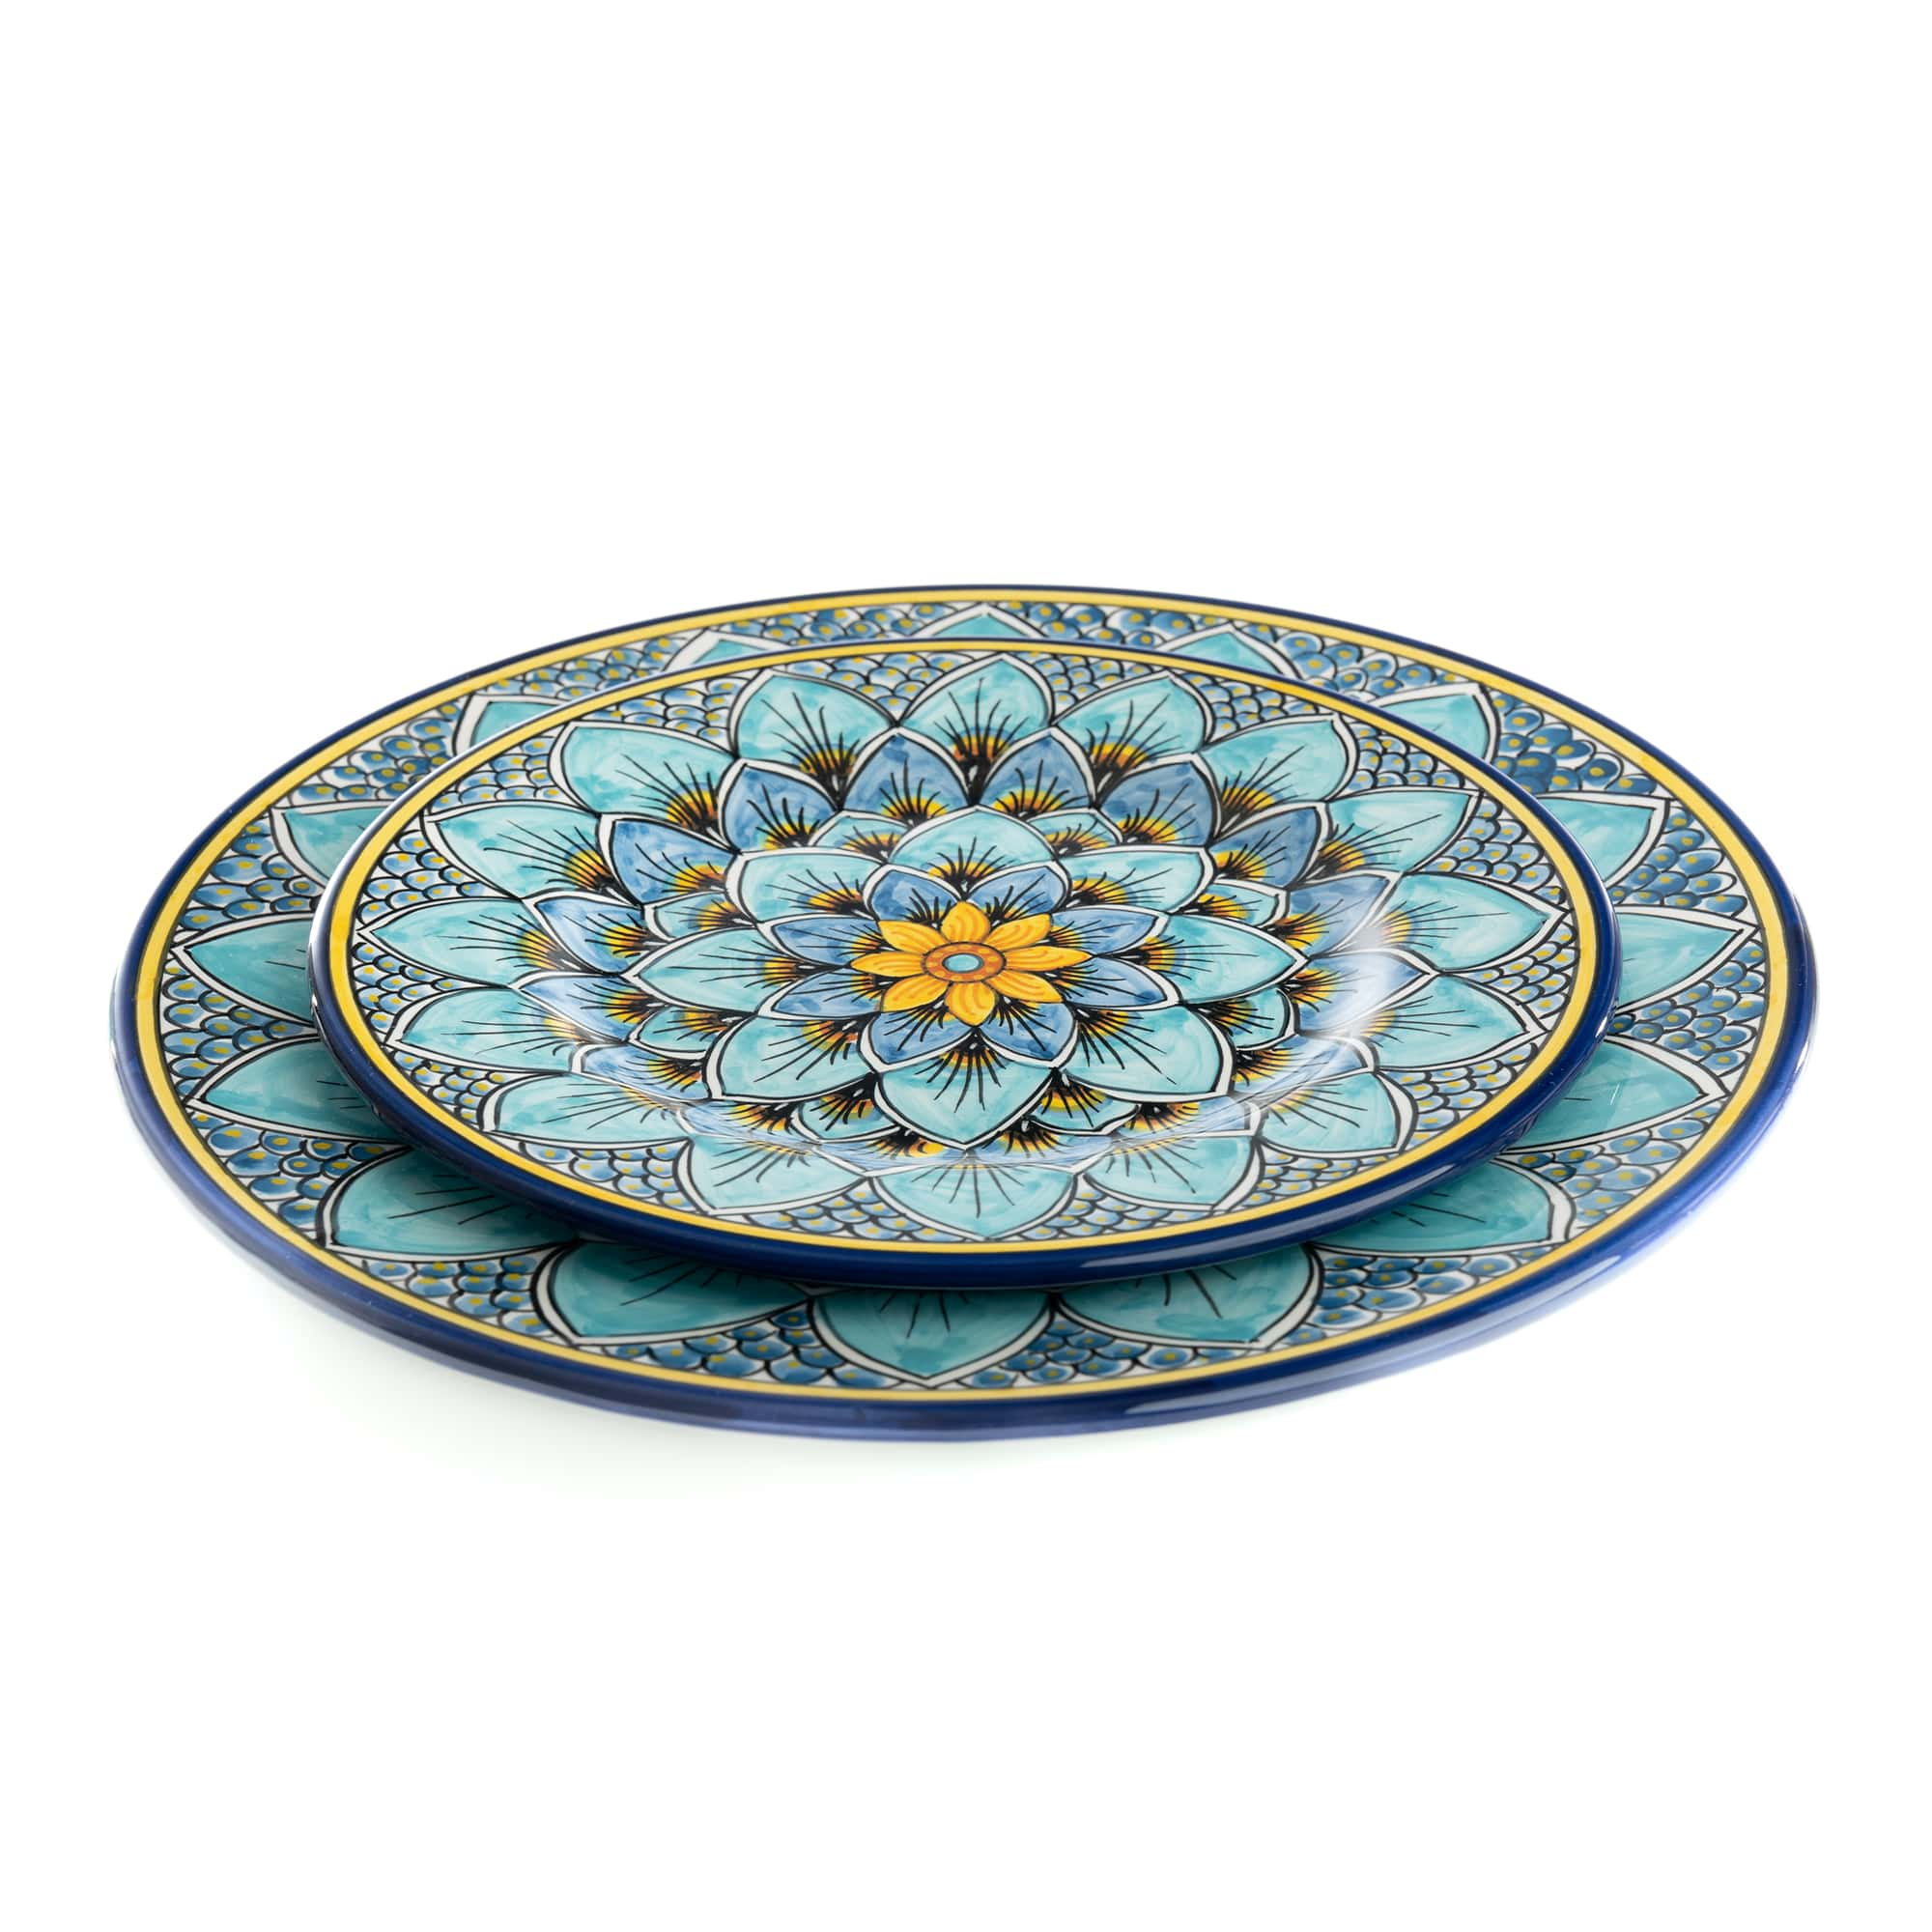 Geribi Salad Plate (PG09) Blues Peacock Design